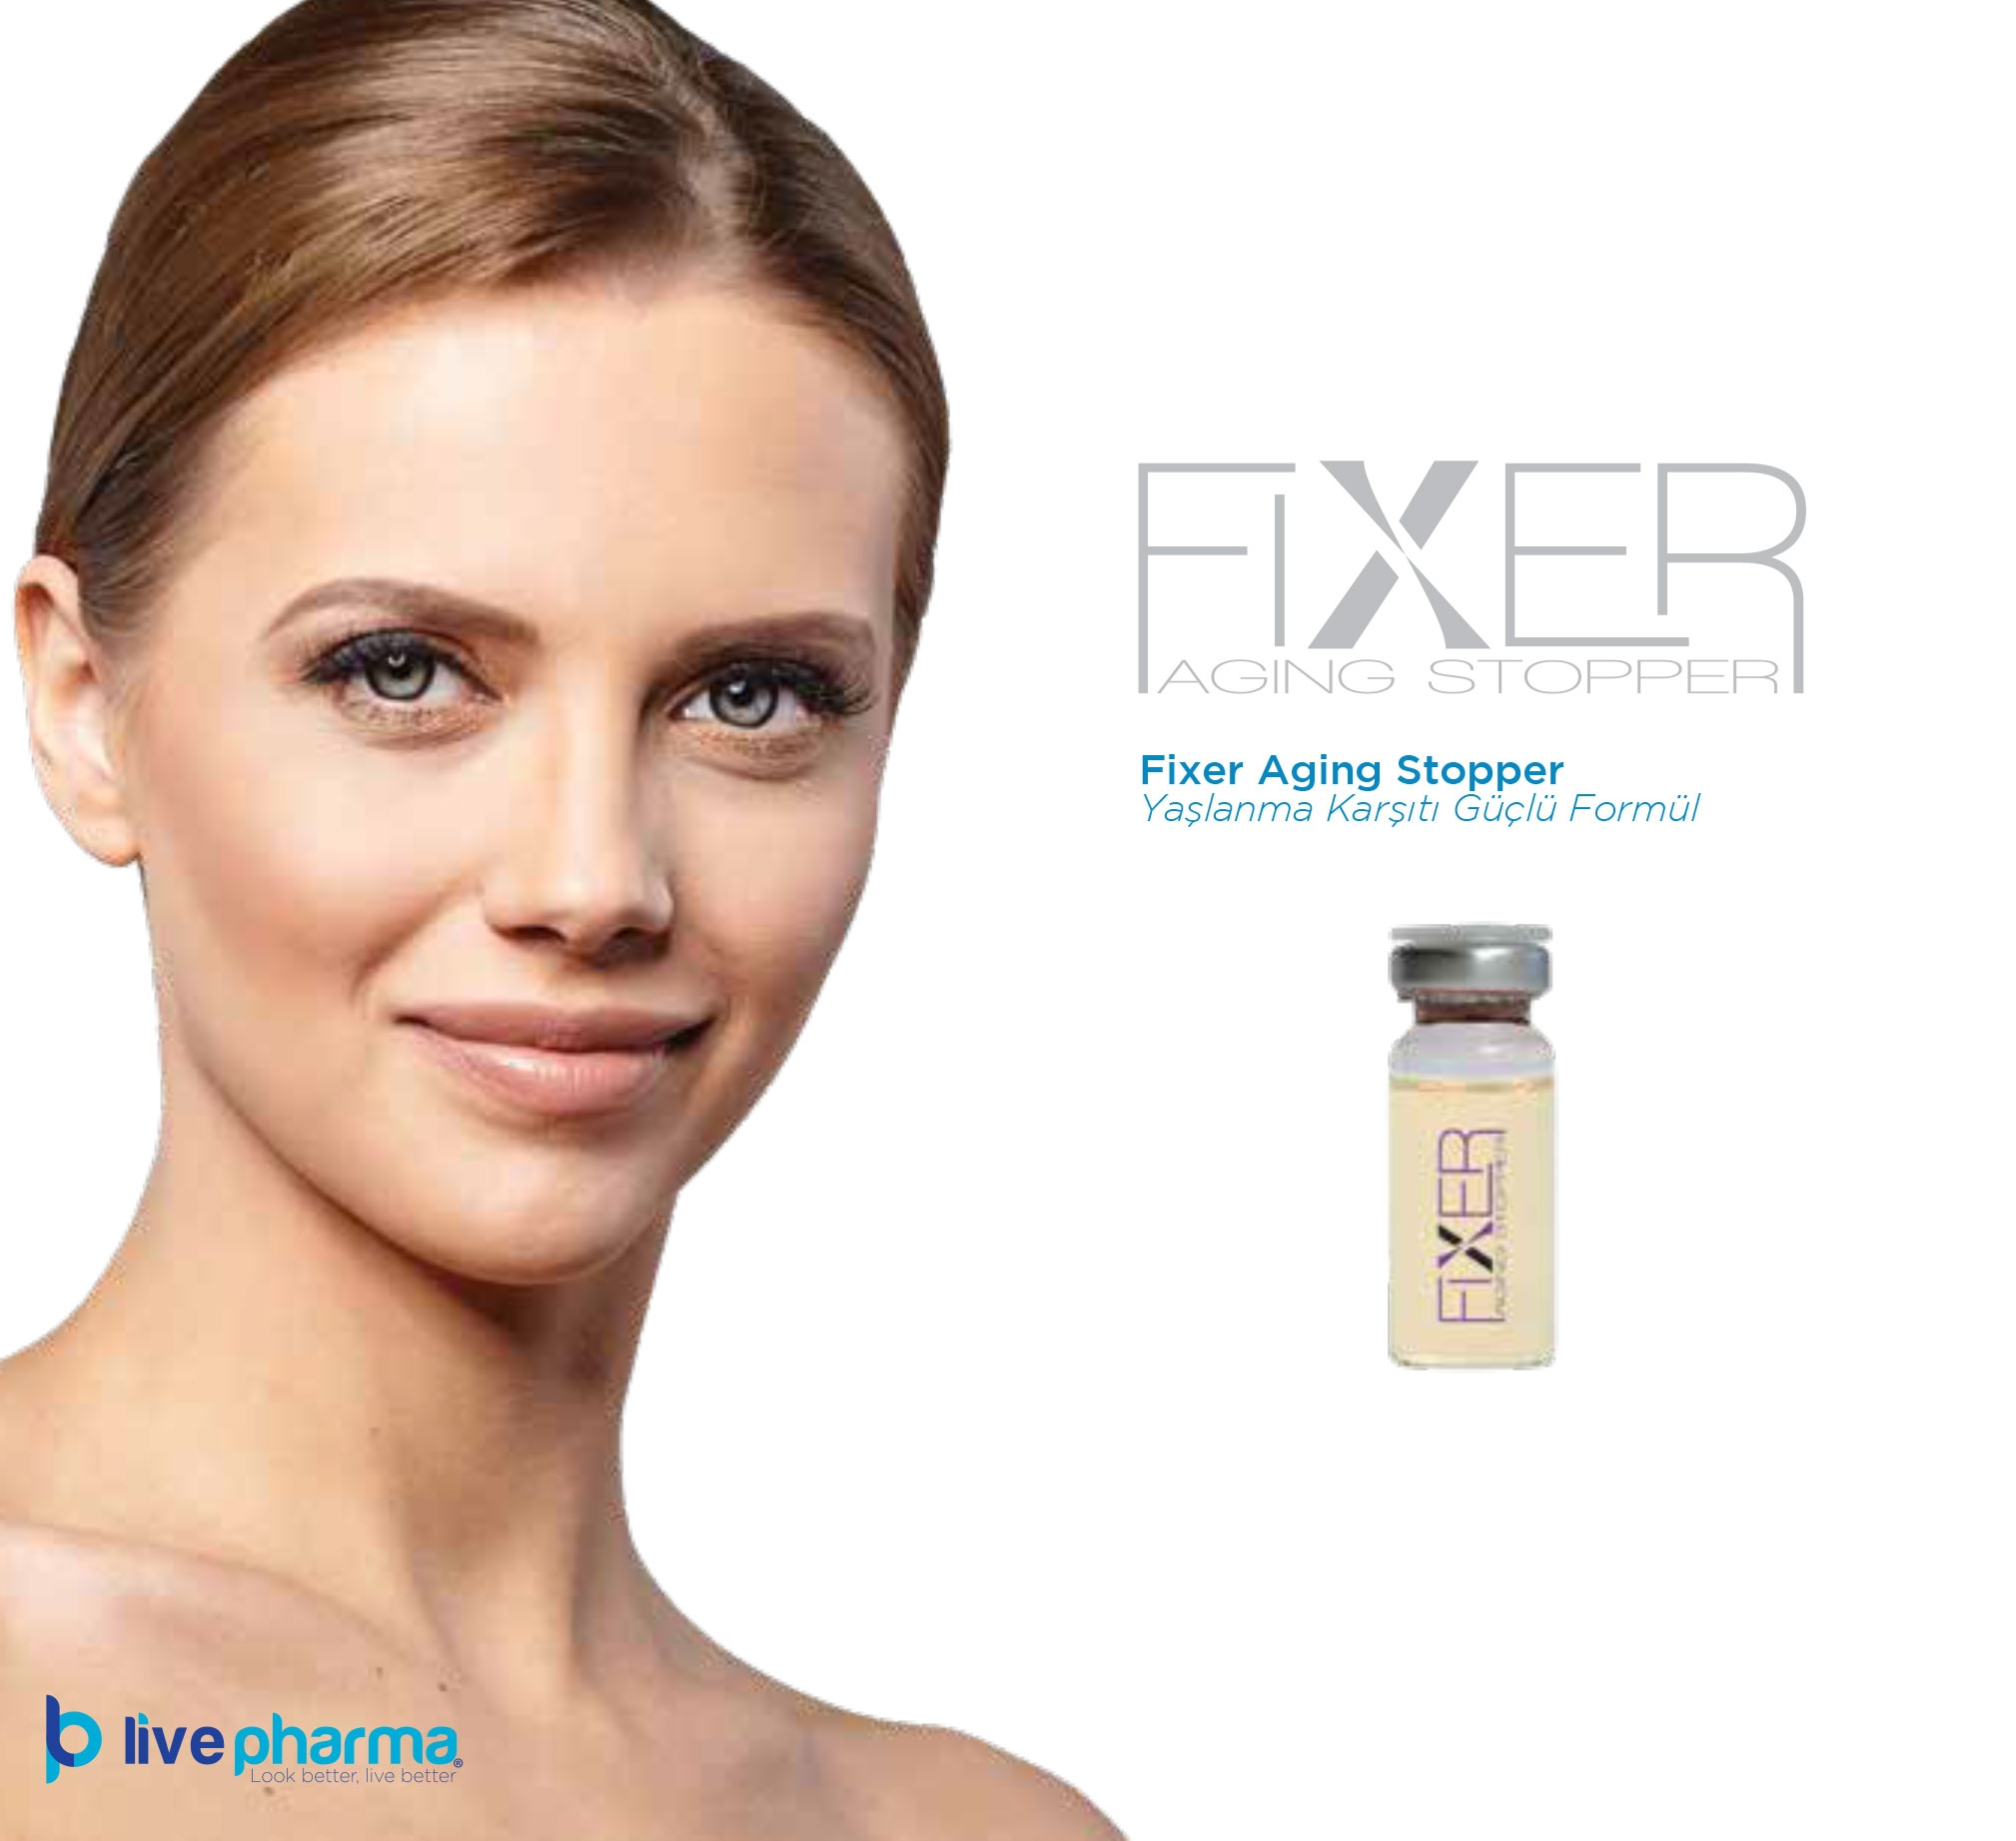 Fixer Aging Stopper - Platinum Collection